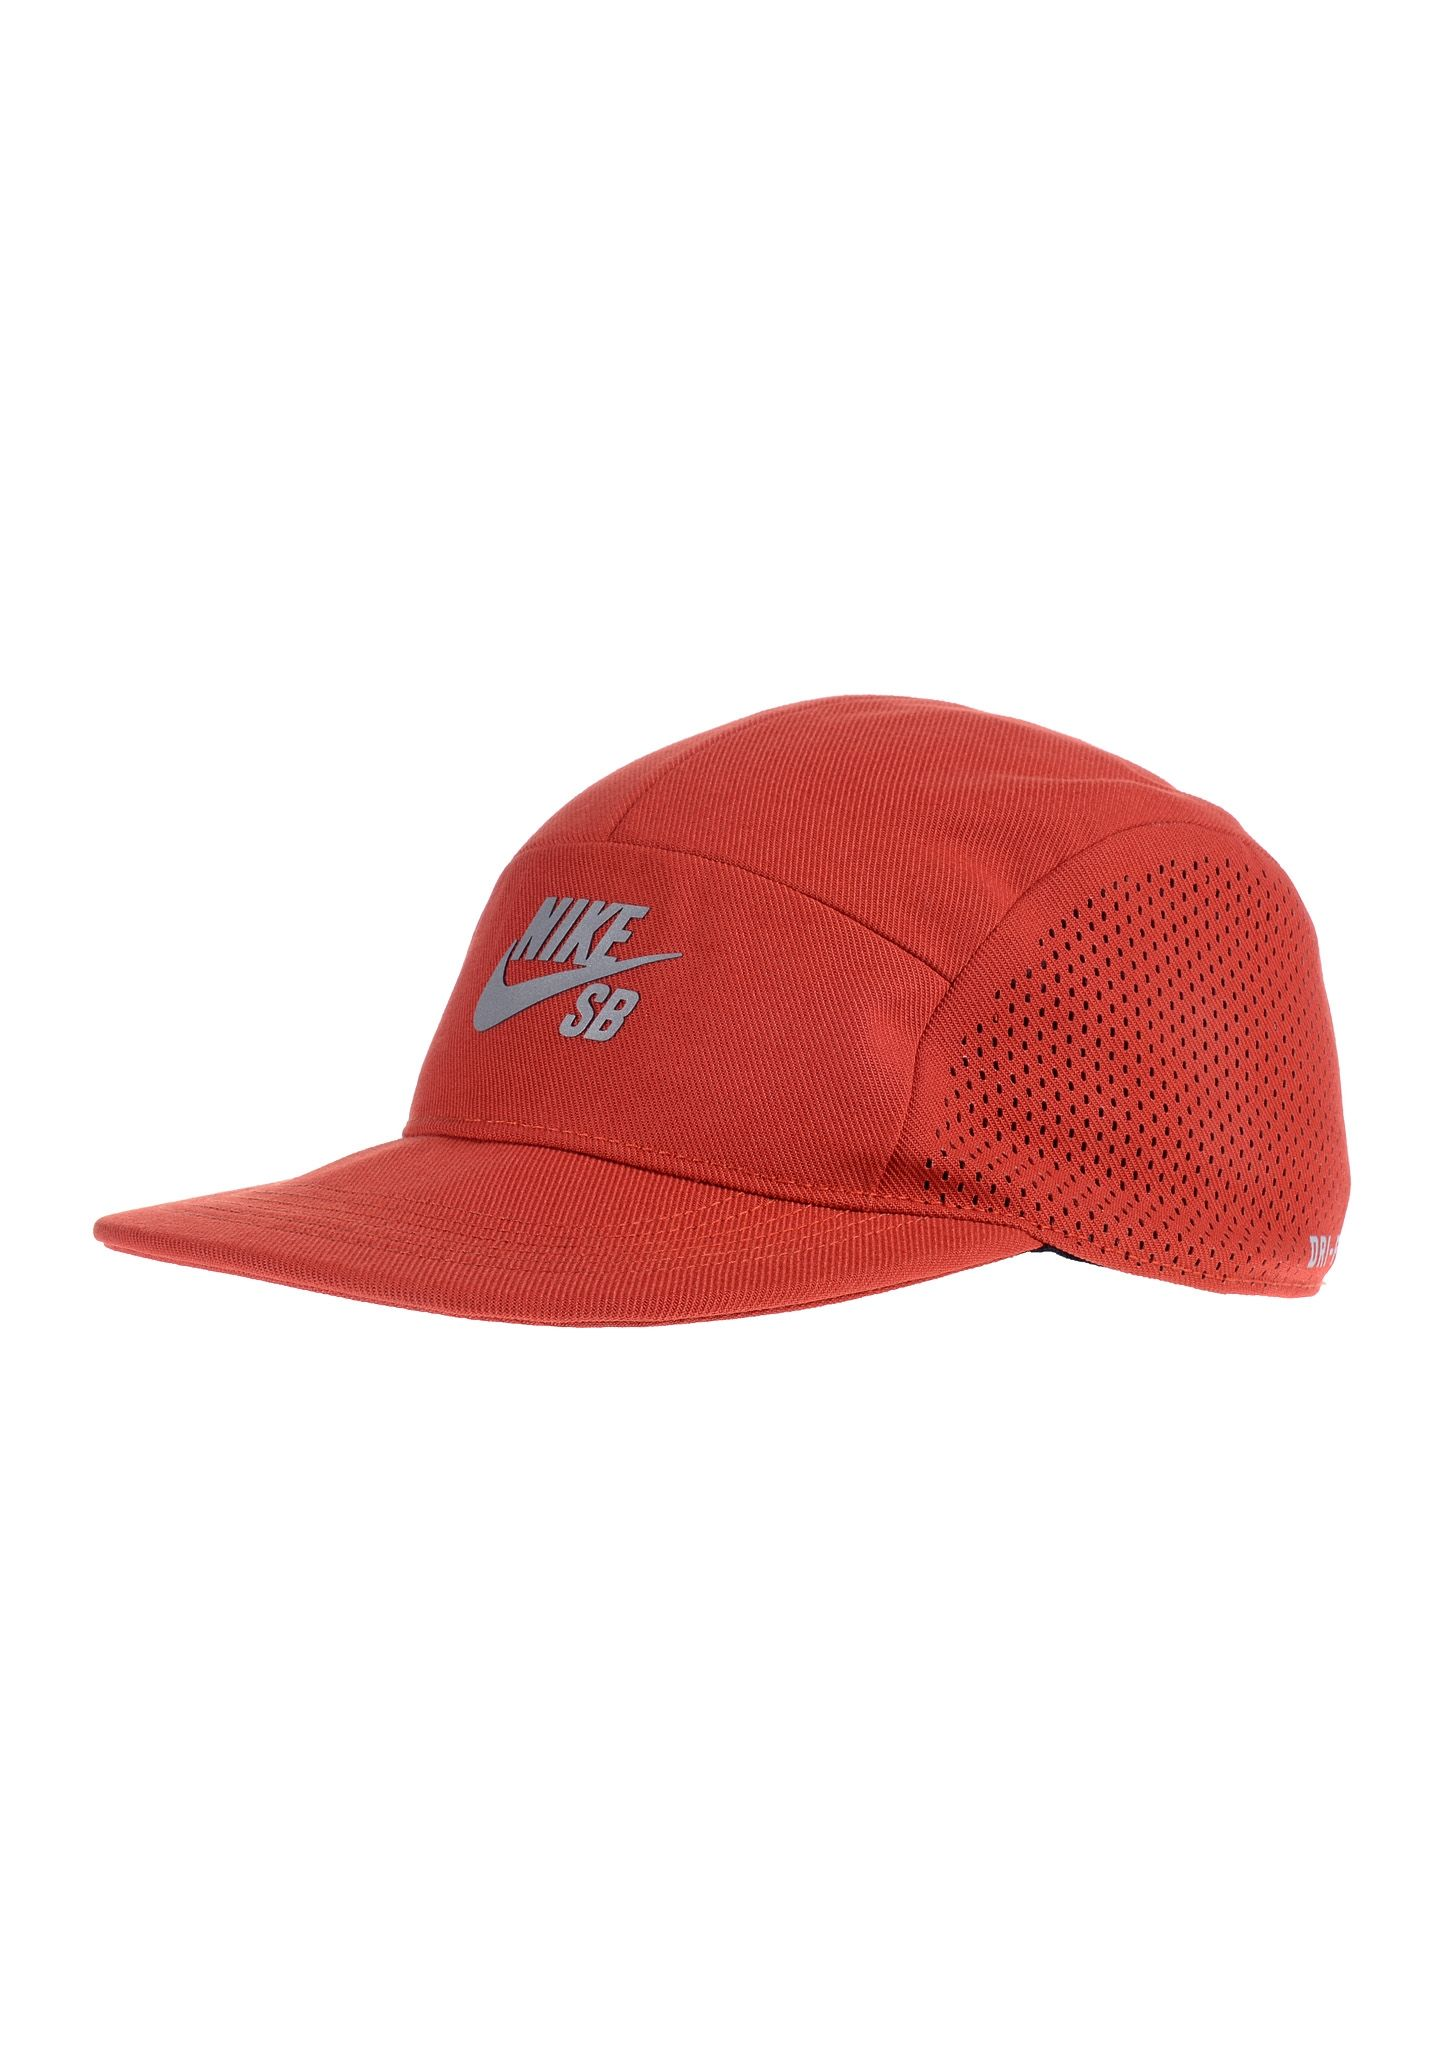 7fcd6ea205 NIKE SB Performance 5 Panel - Cap - Red - Planet Sports